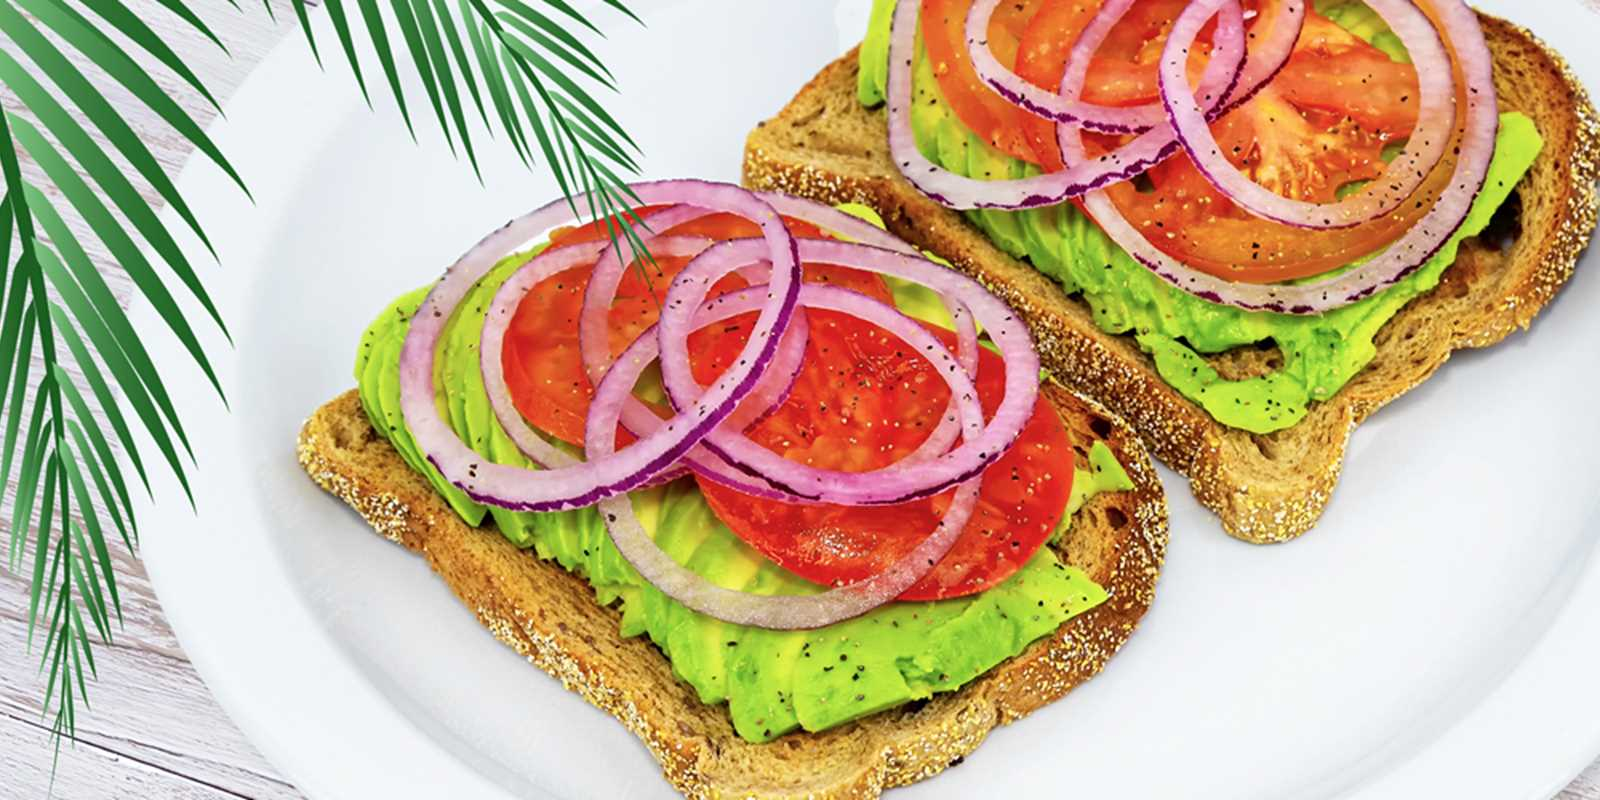 The Palm Deli offers scrumptious Avocado Toast with fresh ingredients made to order.